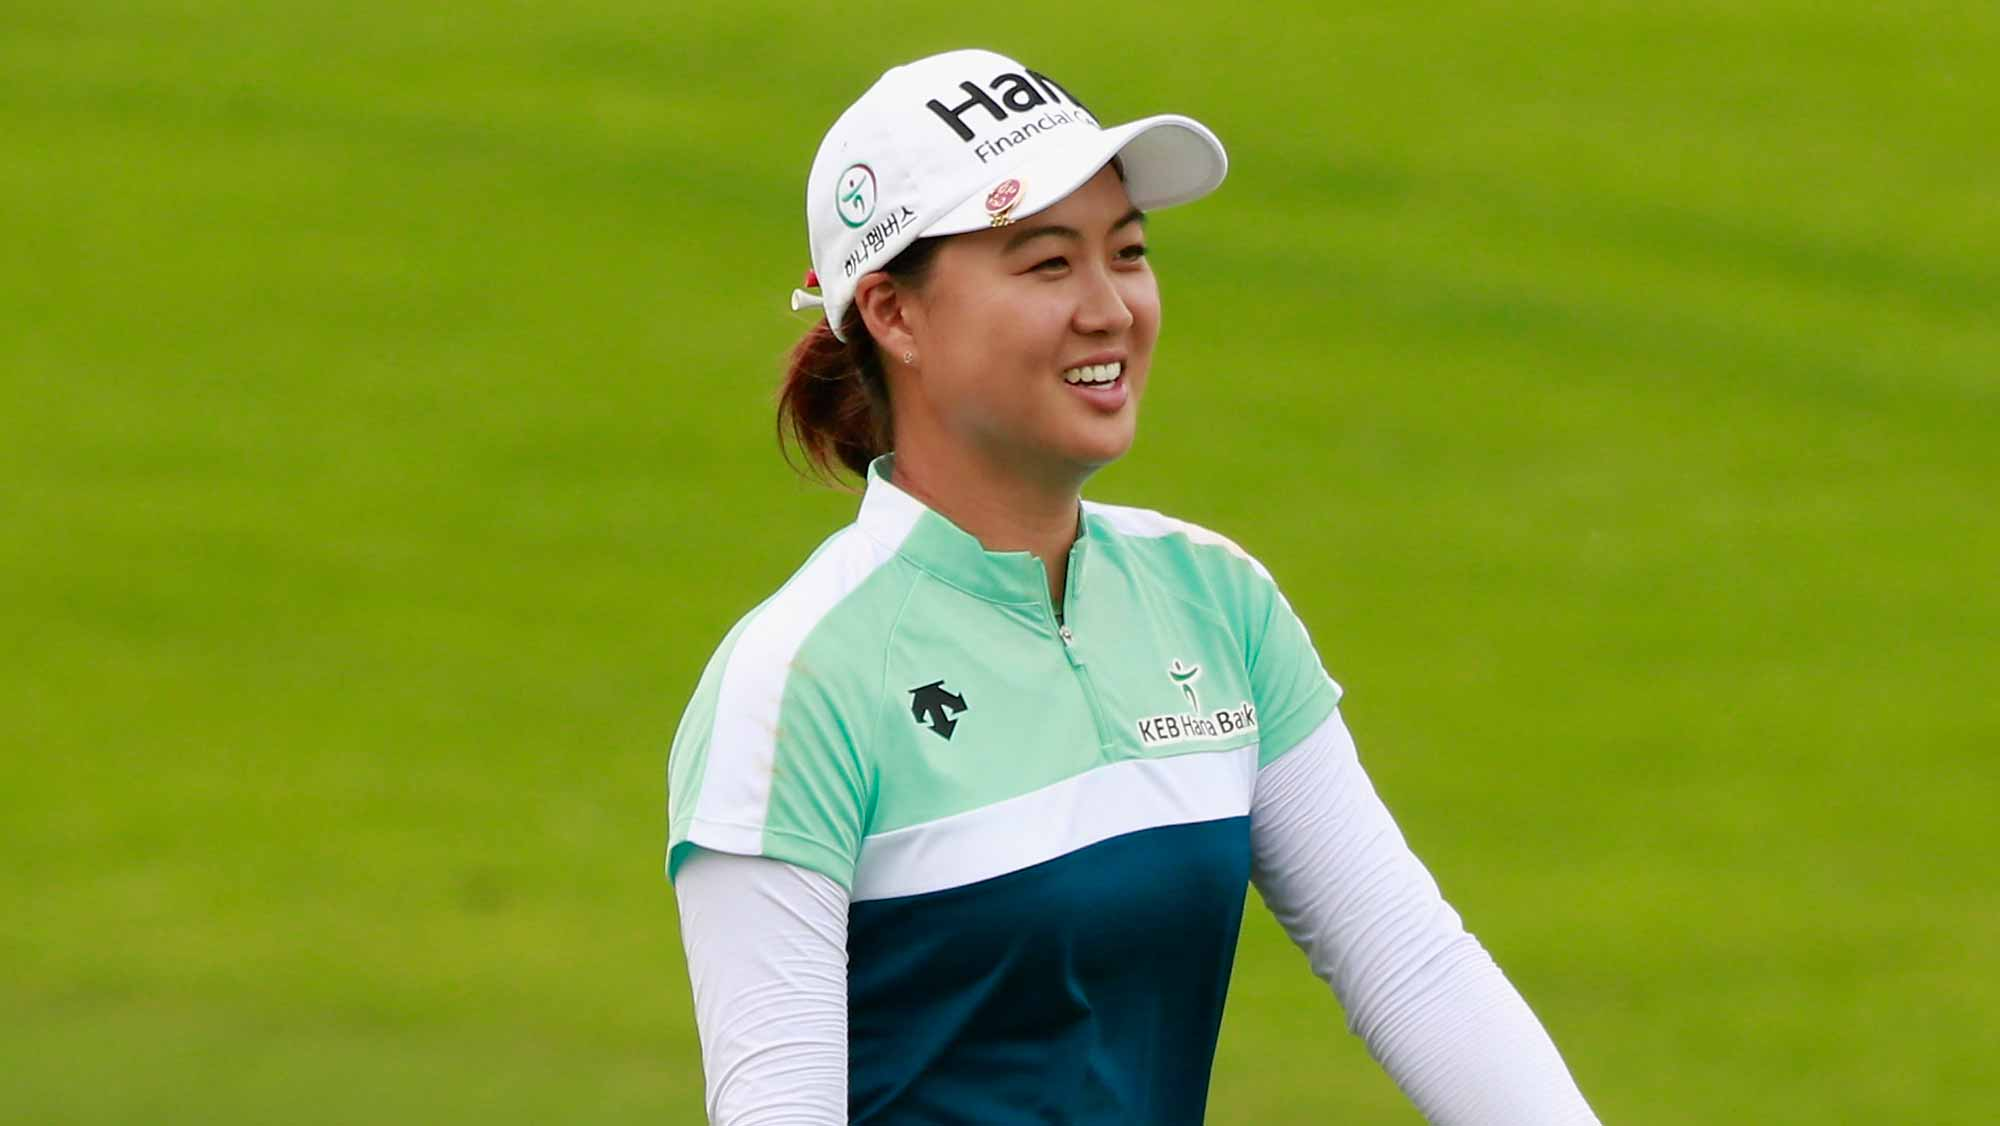 Minjee Lee of Australia reacts on the field at the 18th hole during Round 2 of Blue Bay LPGA